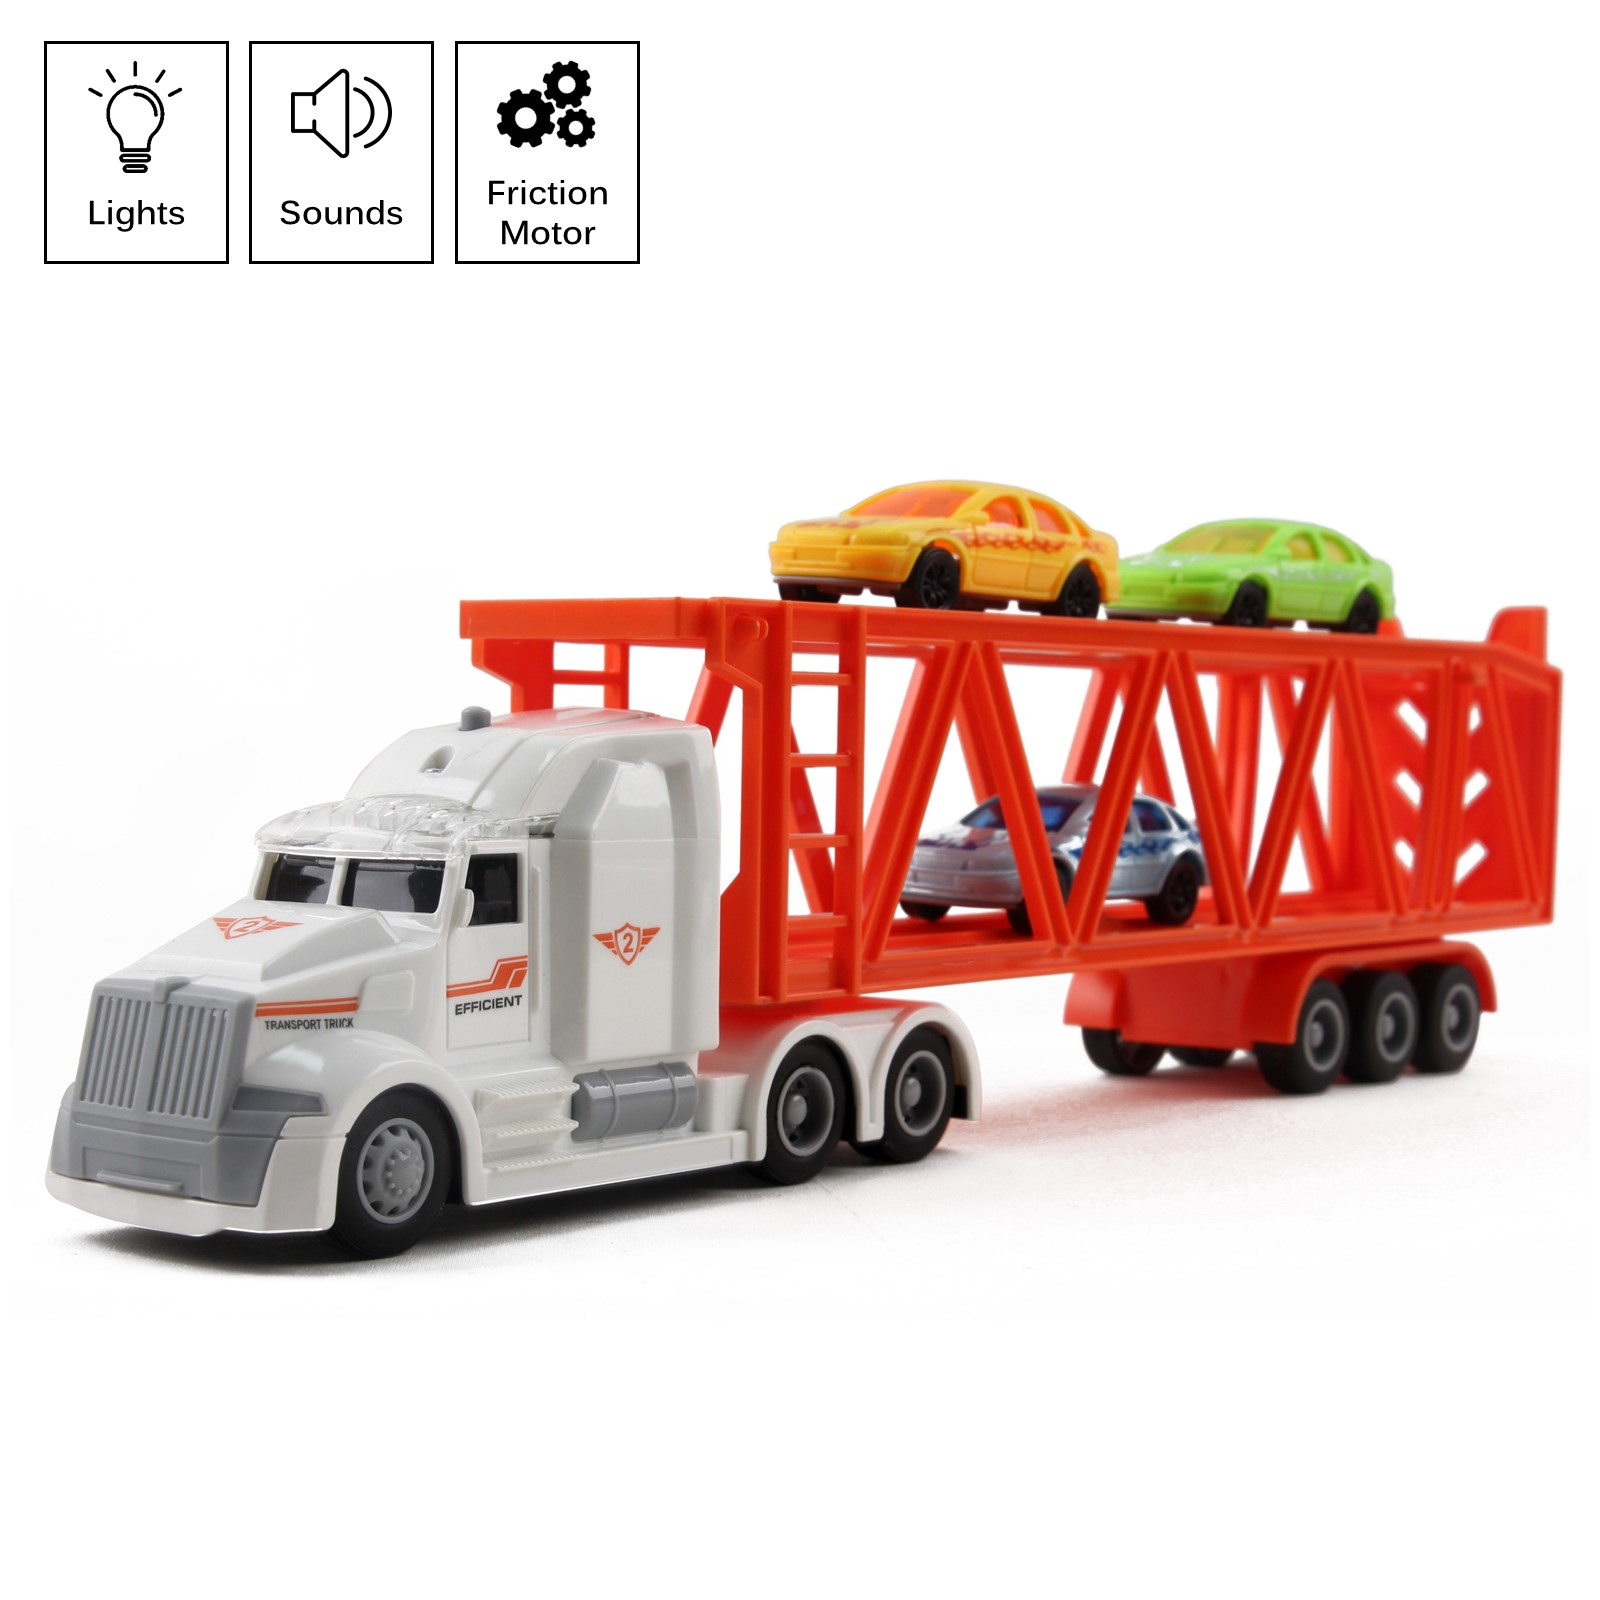 "Toy Semi Truck Trailer 3 Car Carrier 14"" Friction Powered With Lights And Sounds Kids Push And Go Big Rig Auto Transporter Vehicle Semi-Truck Pretend Play Great Gift For Children Boys Girls"